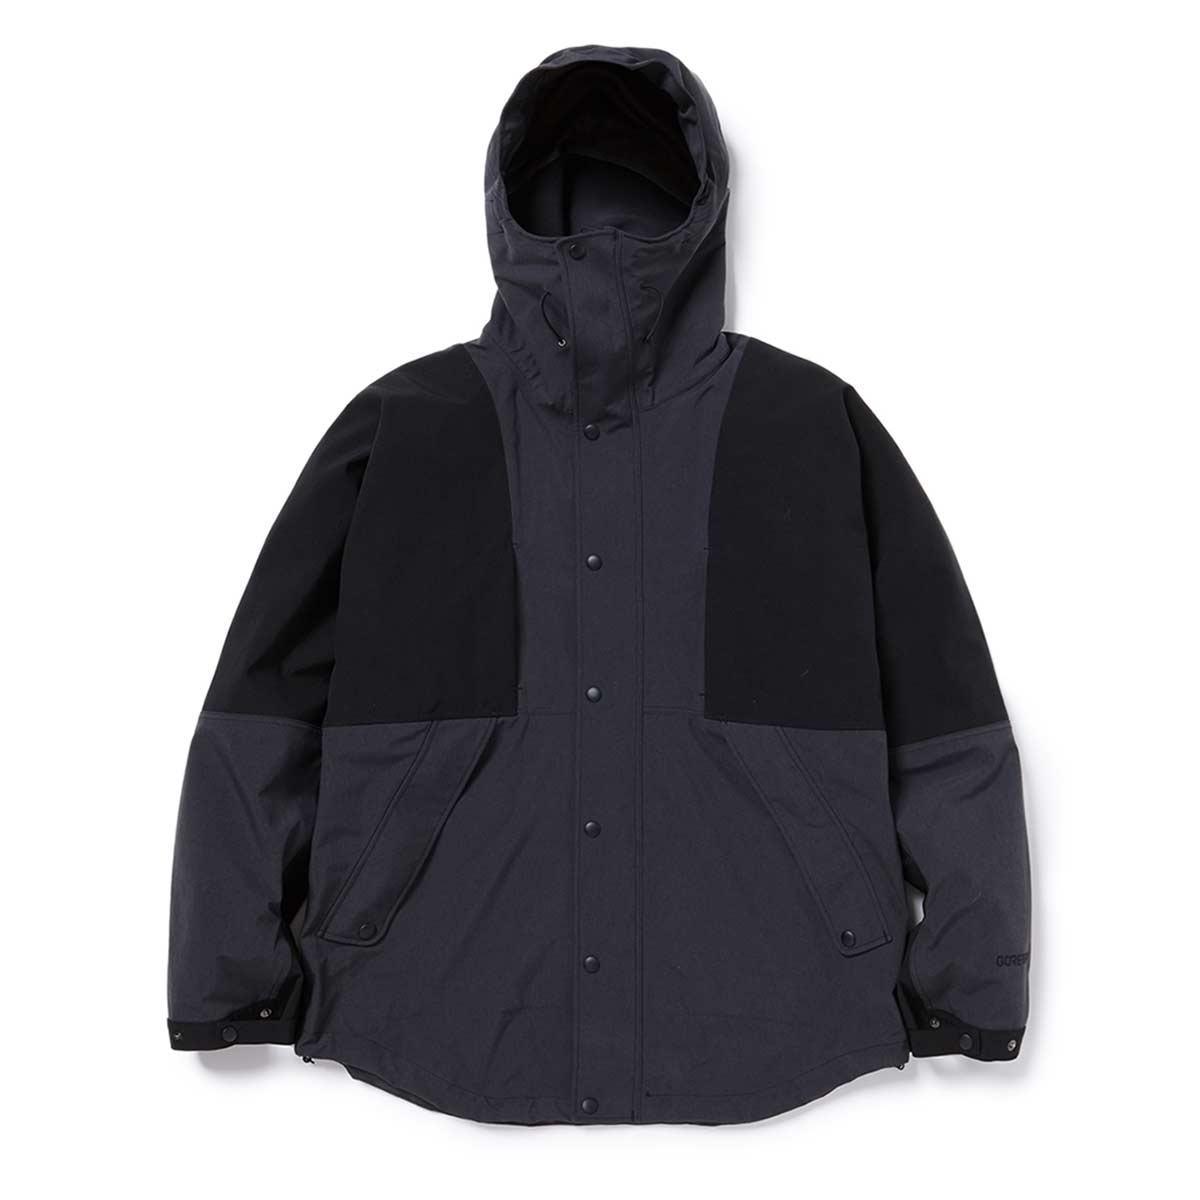 nonnative / ALPINIST HOODED JACKET N/P TAFFETA WITH GORE-TEX 3L -CHARCOAL/BLACK